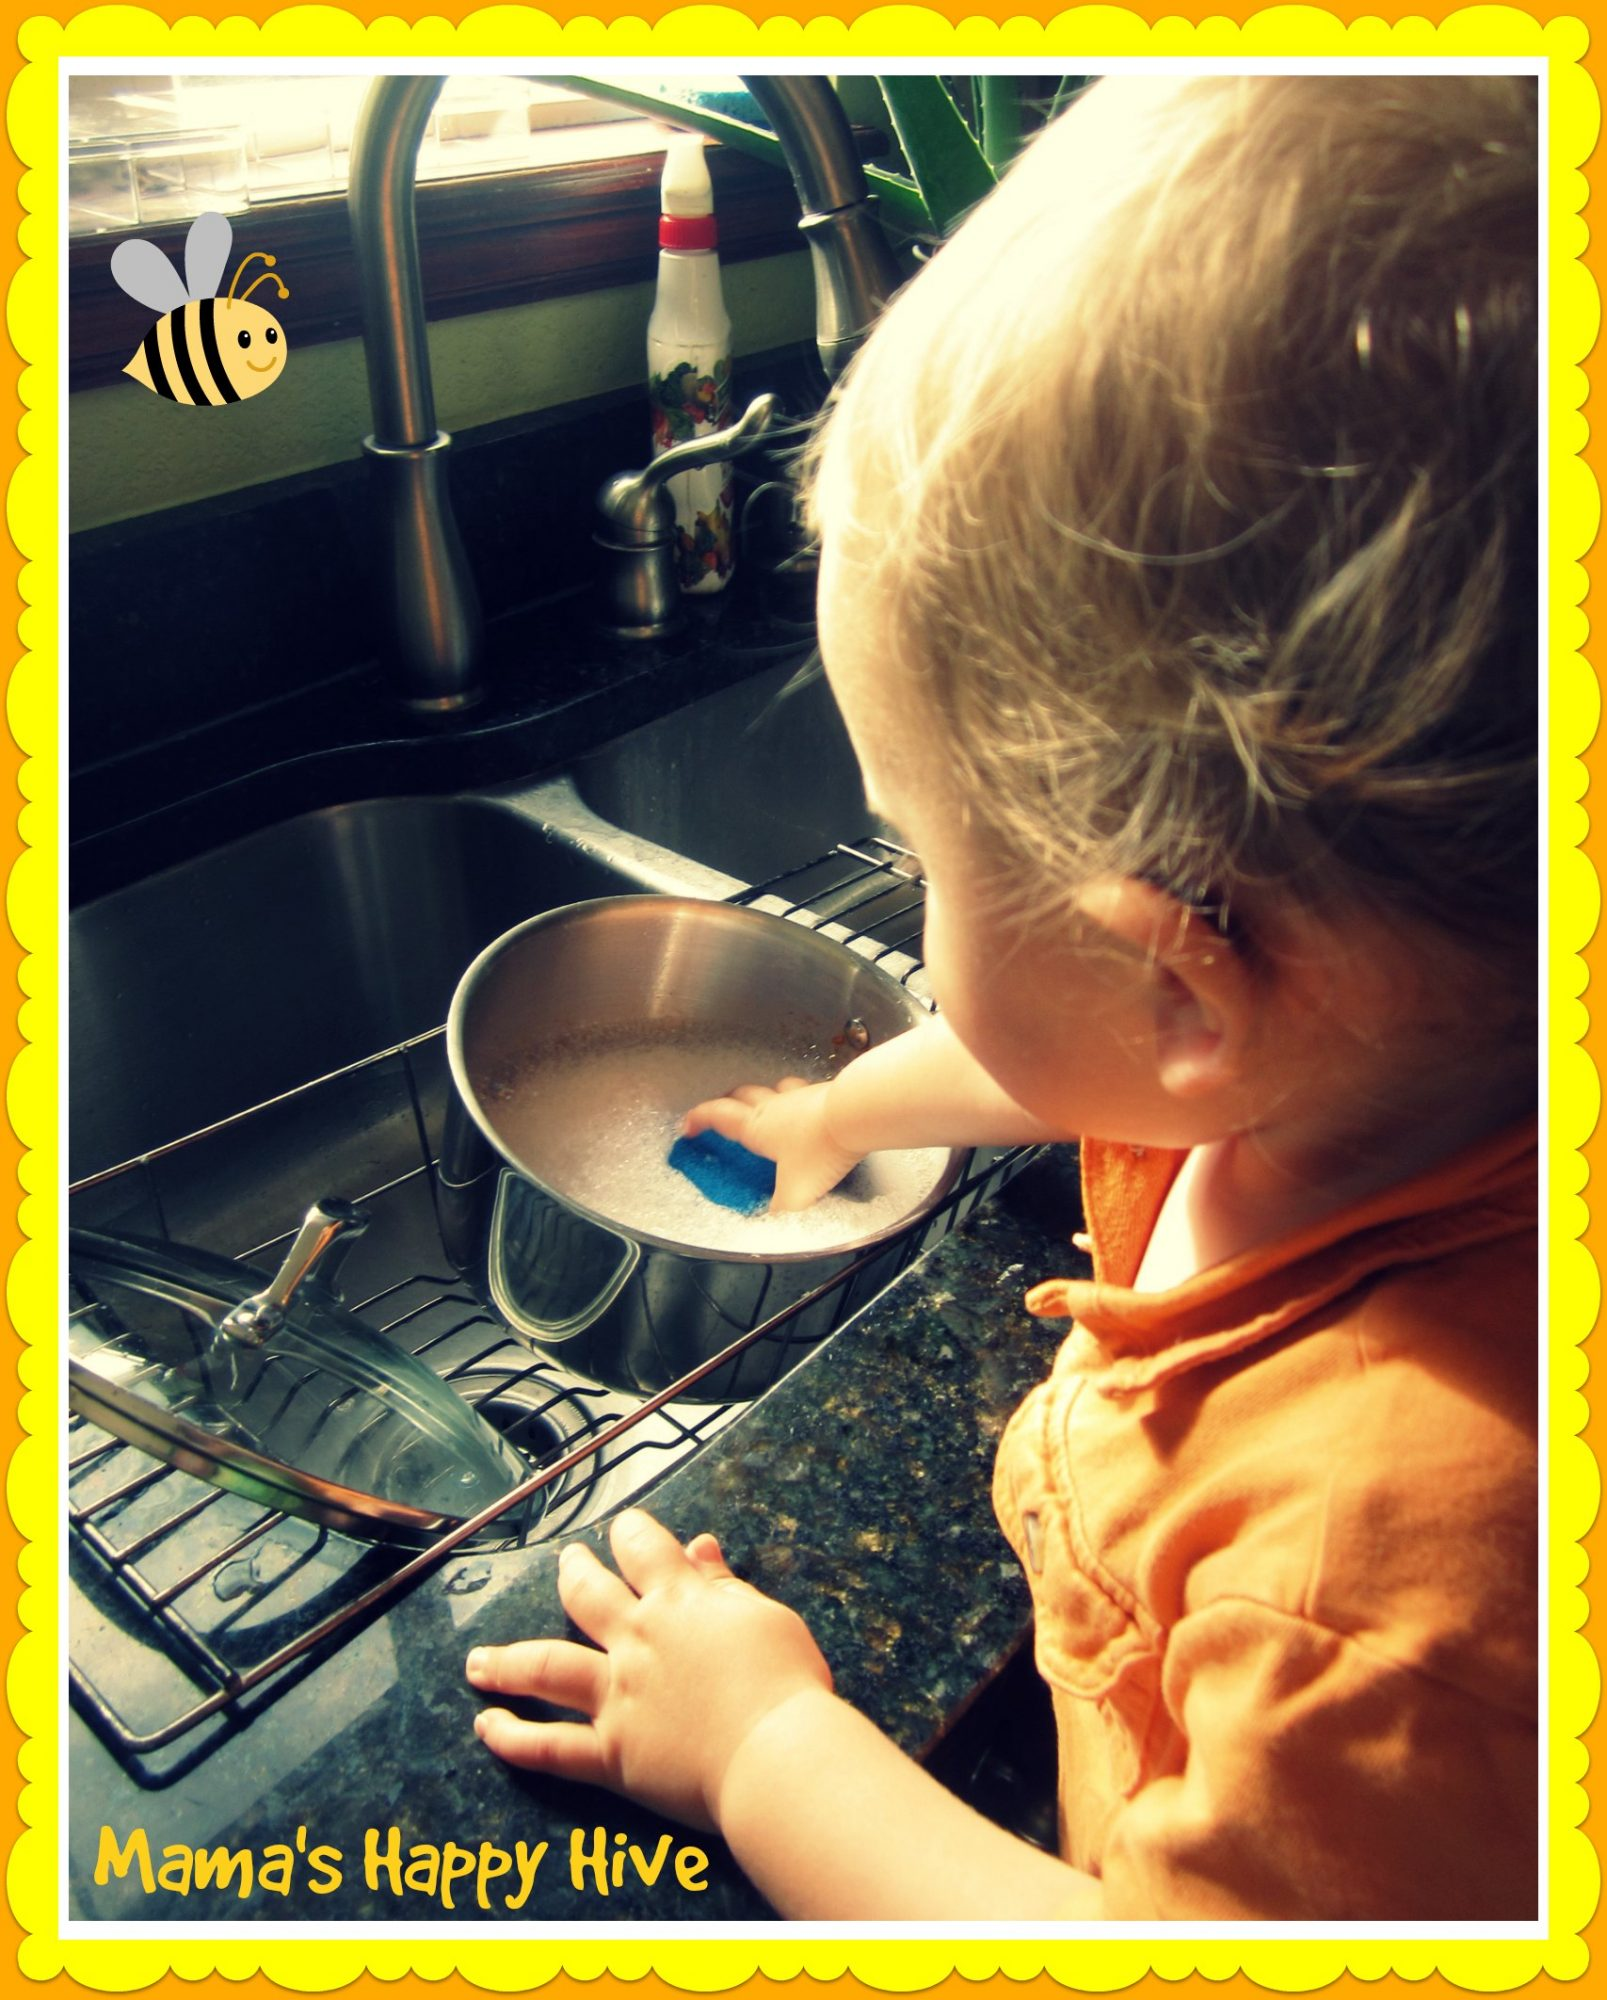 Toddler Washing Dishes - www.mamashappyhive.com